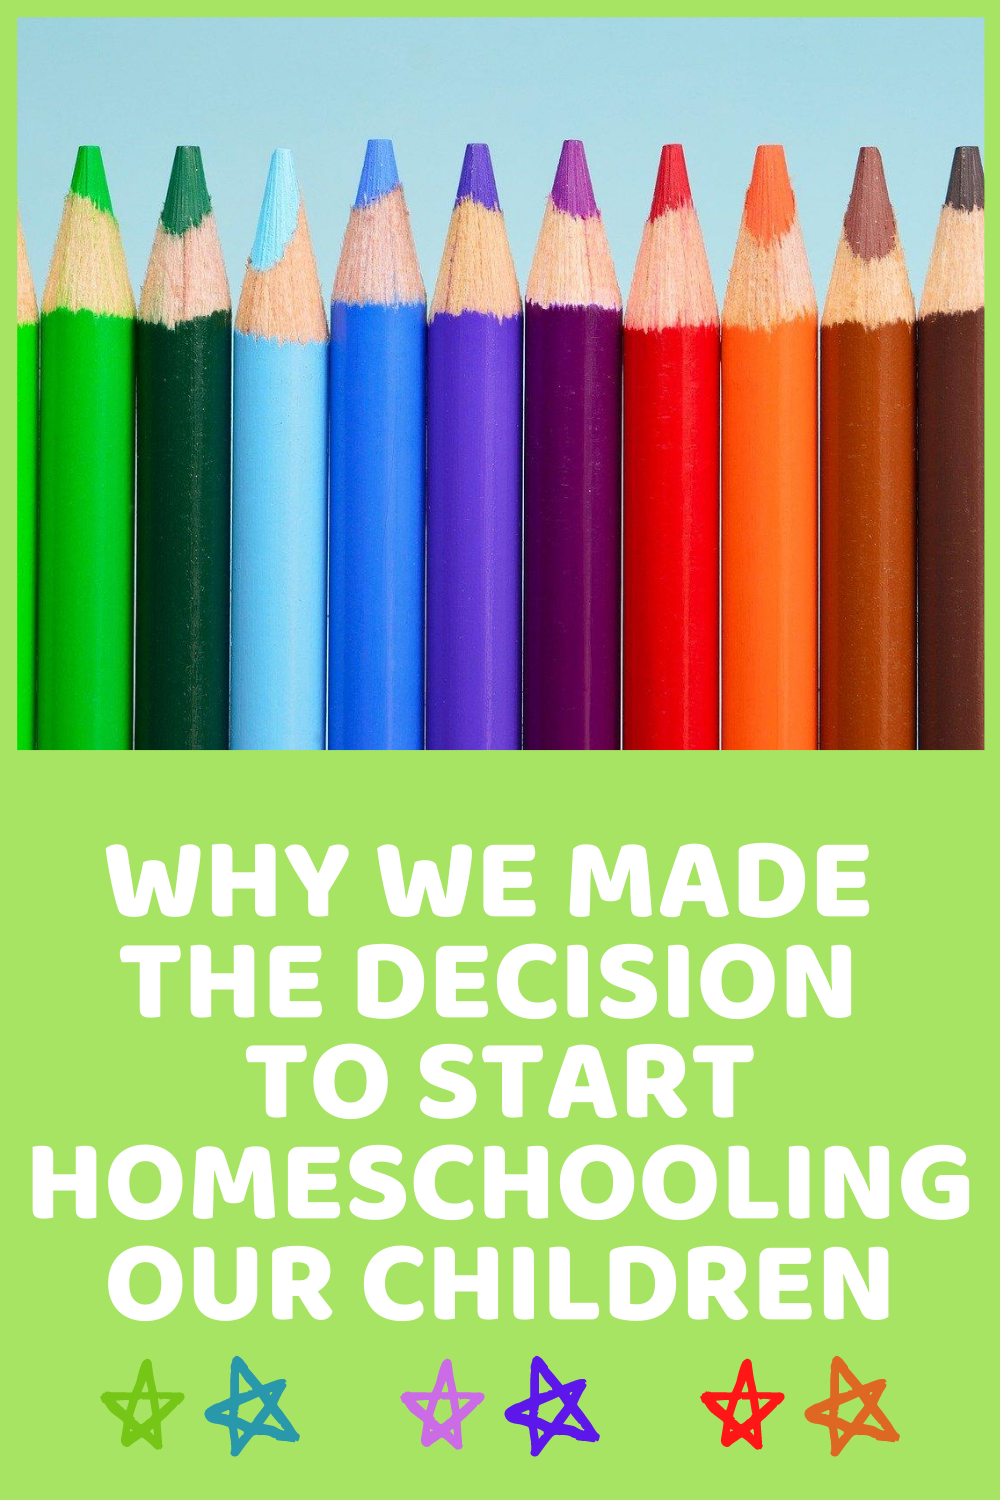 Why We've Decided To Start Homeschooling